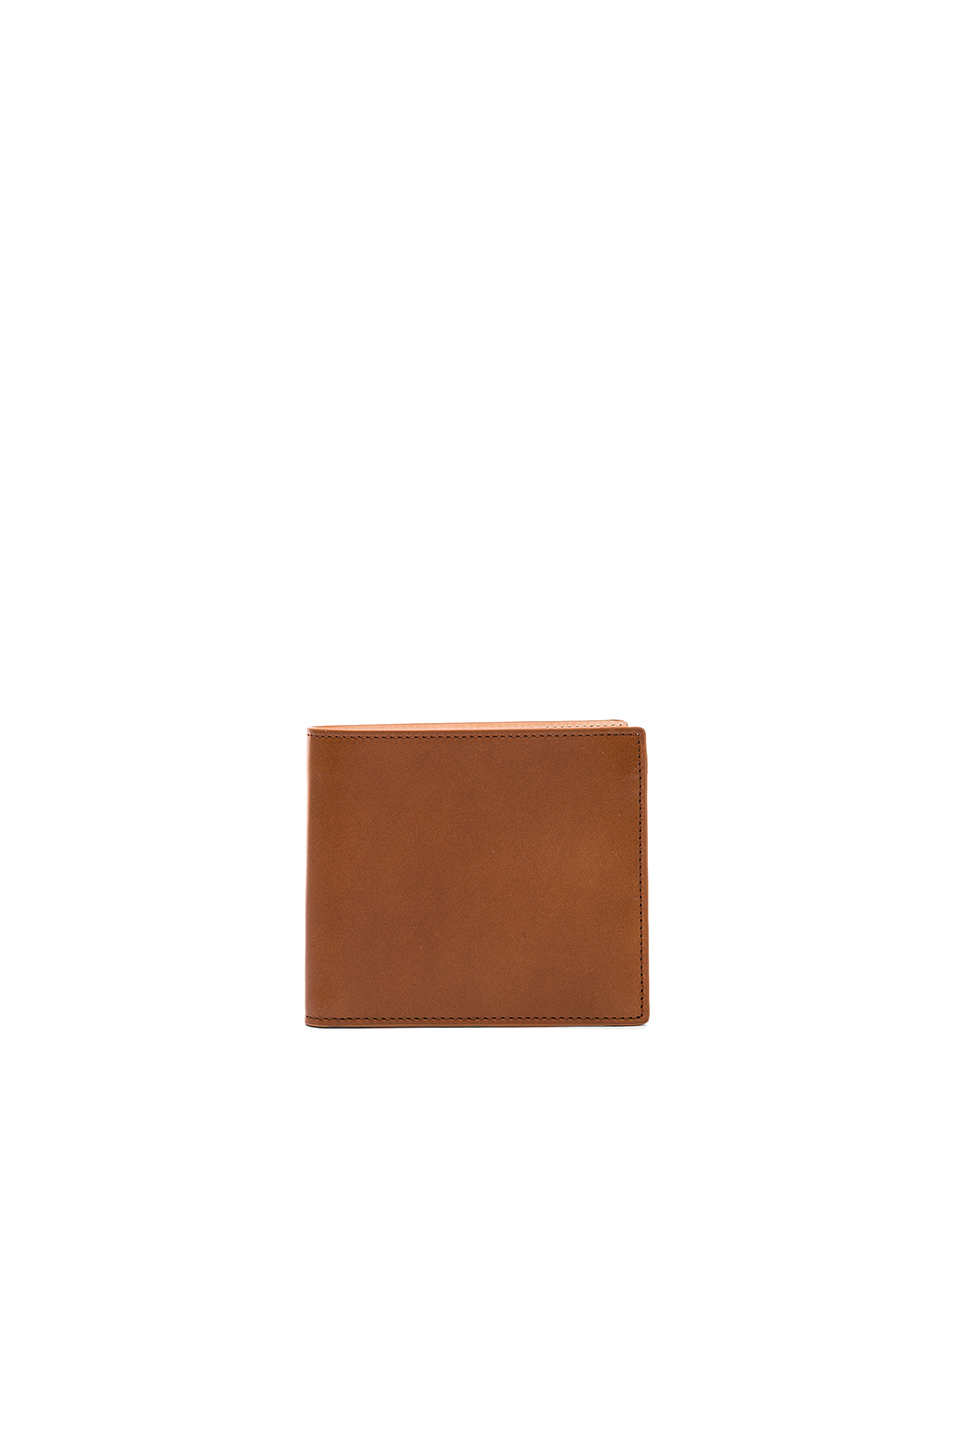 Maison Margiela Calf Leather Billfold Wallet in Brown